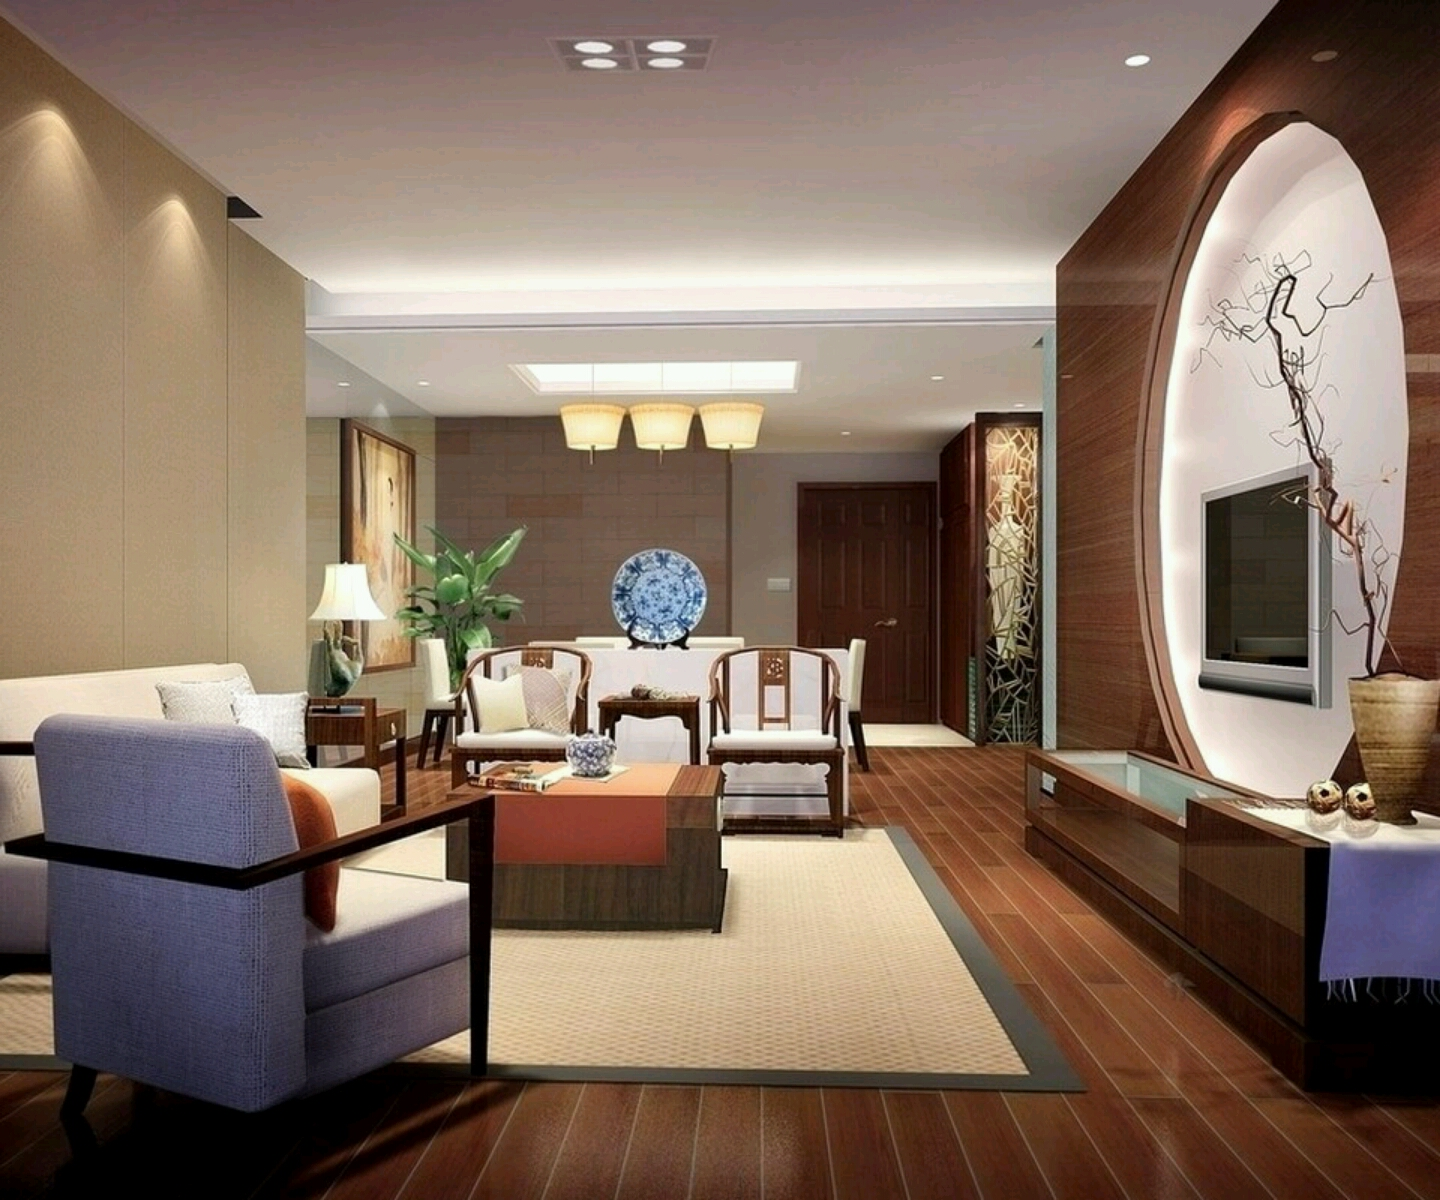 Luxury homes interior decoration living room designs ideas In room designs